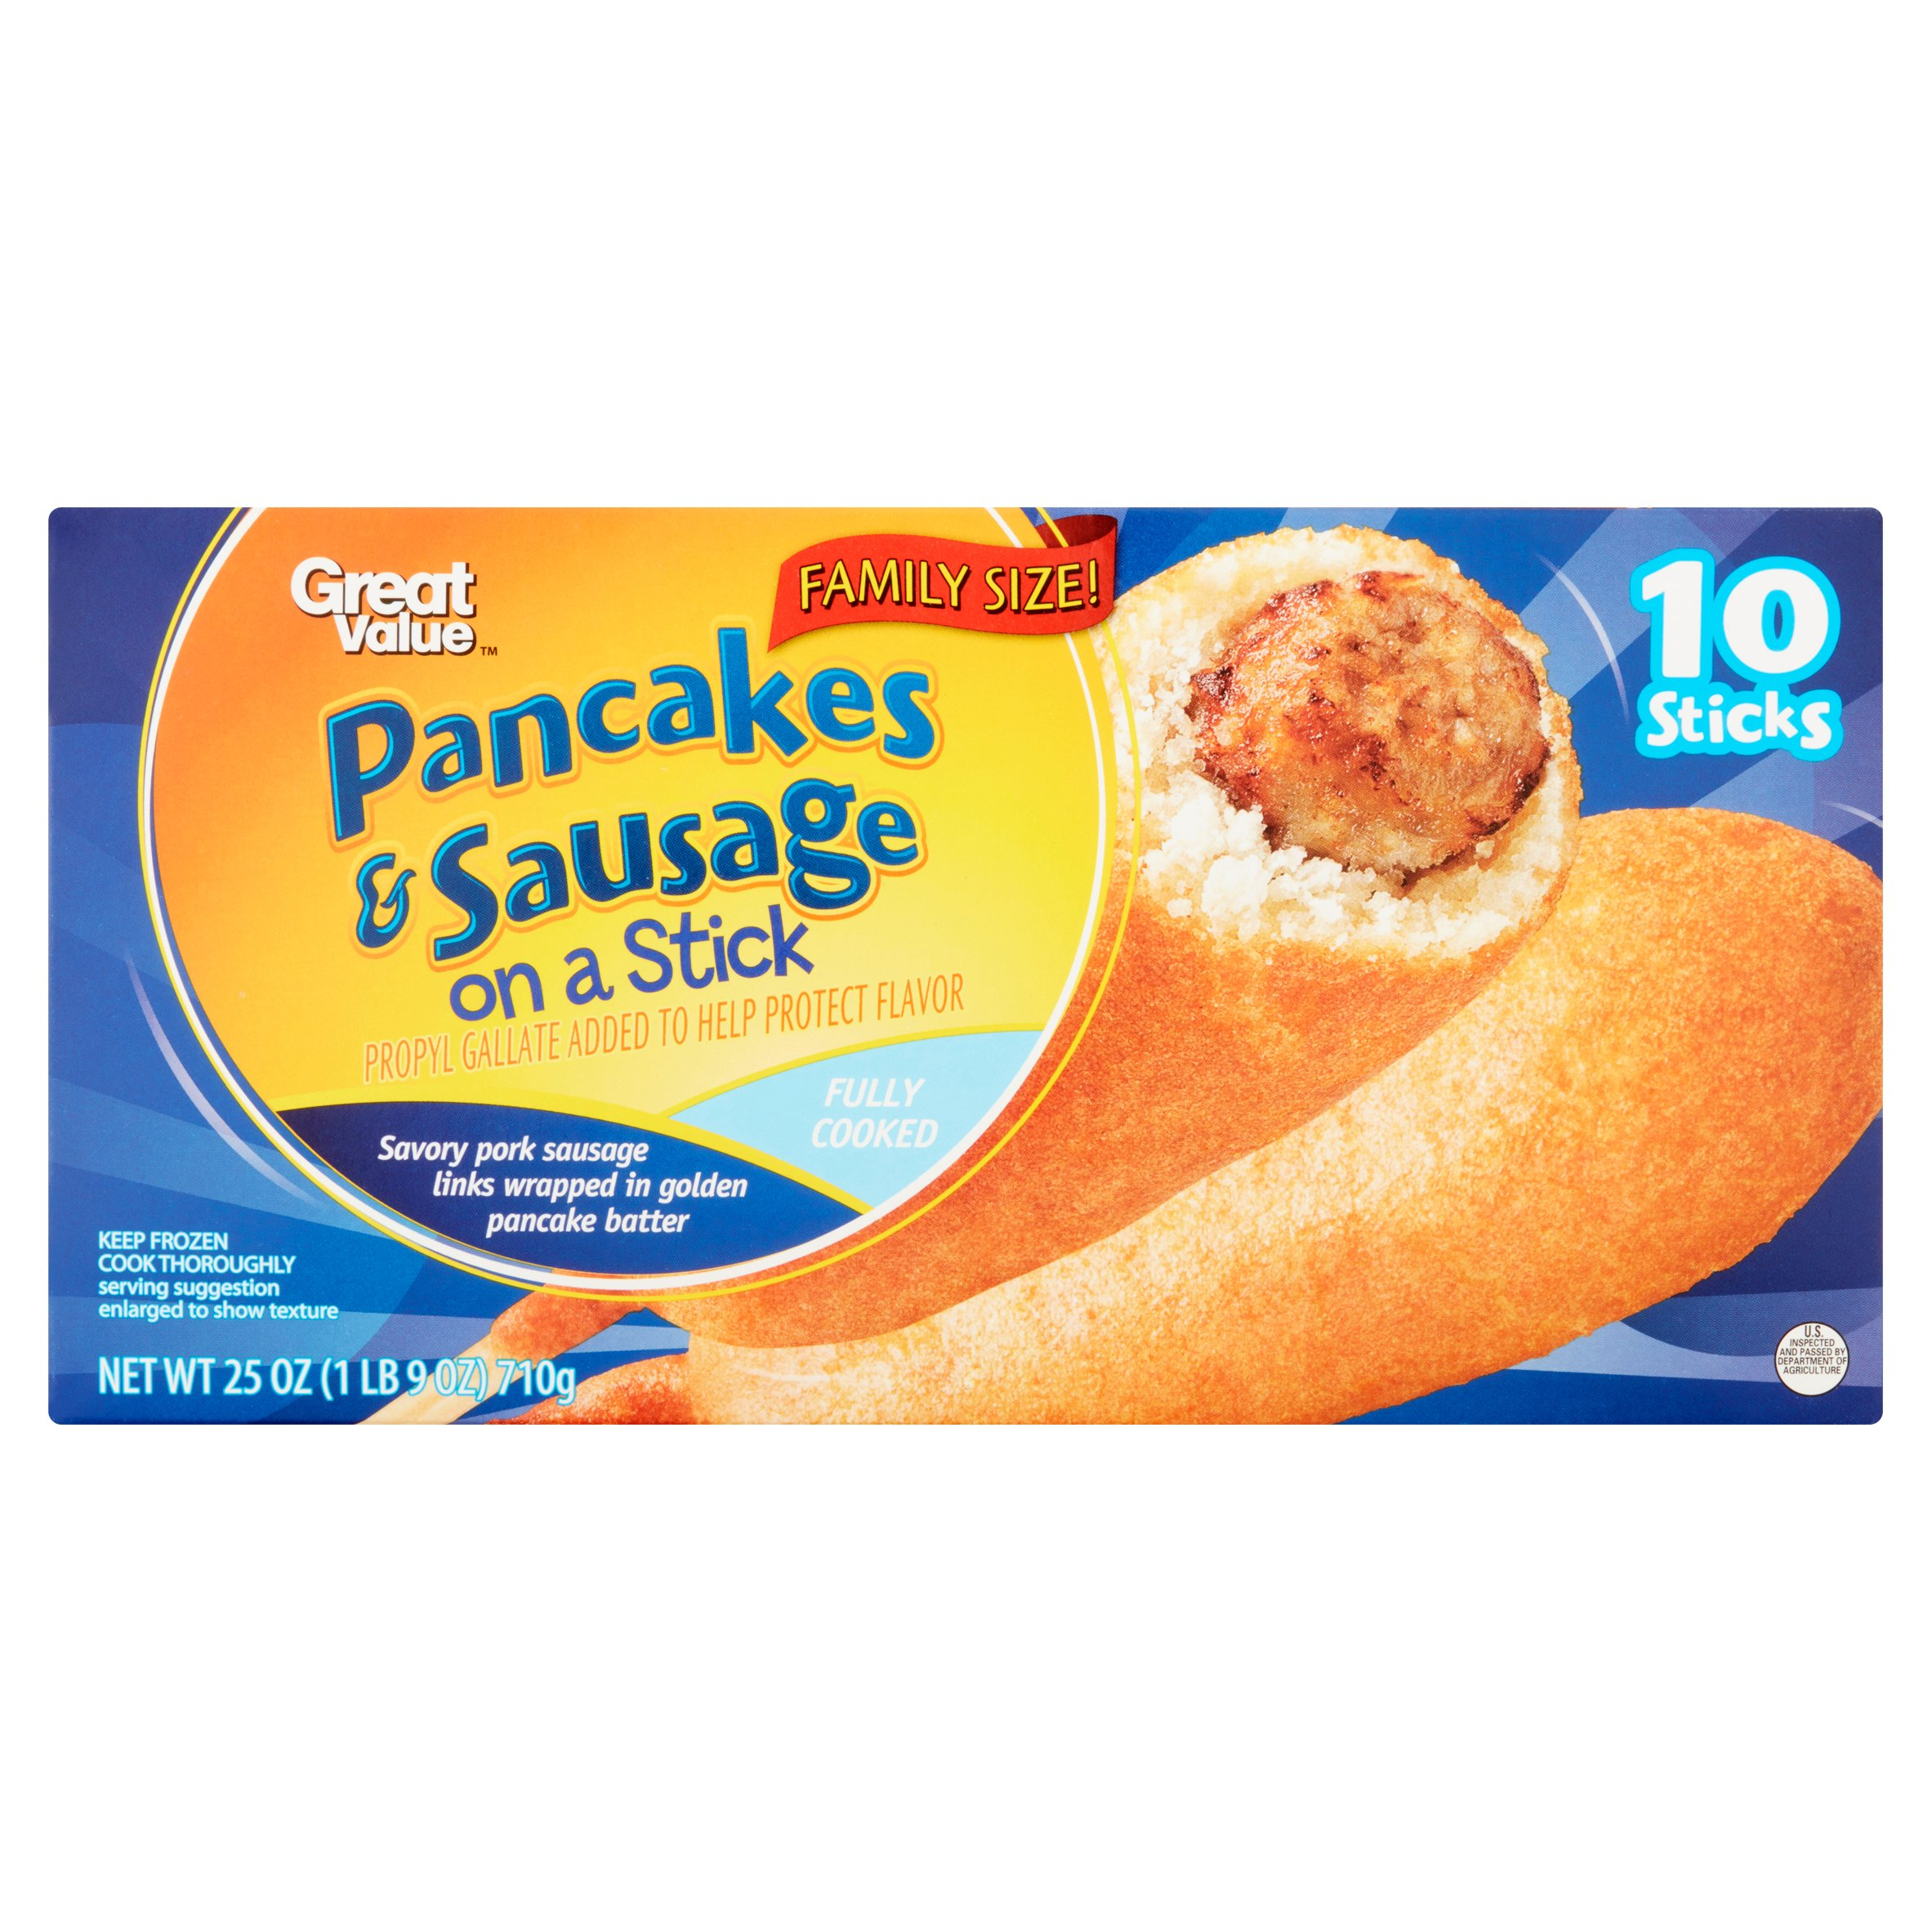 Great Value Pancakes Sausage on a Stick Family Size 10 count 25